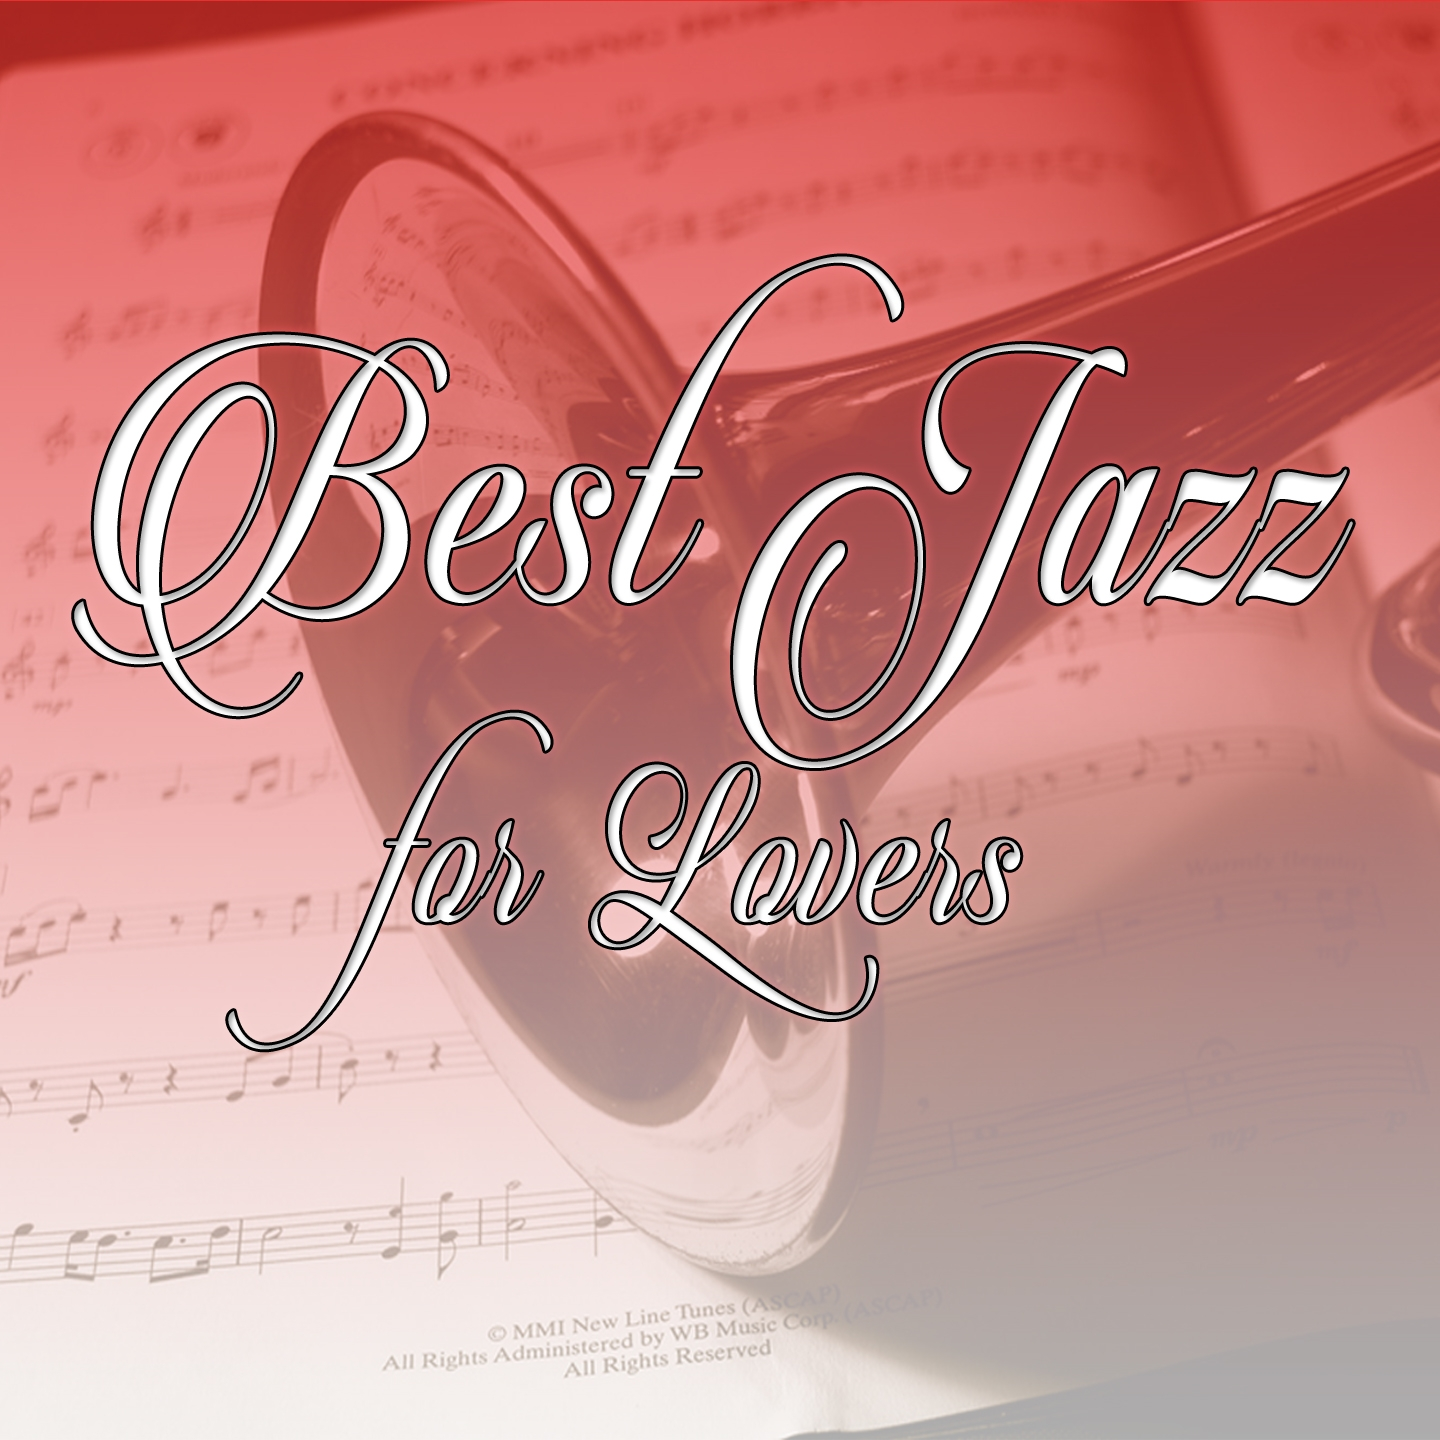 Jazz for Lovers - Besame Mucho, Stardust, Smoke Gets in Your Eyes, And 20 Other Hits